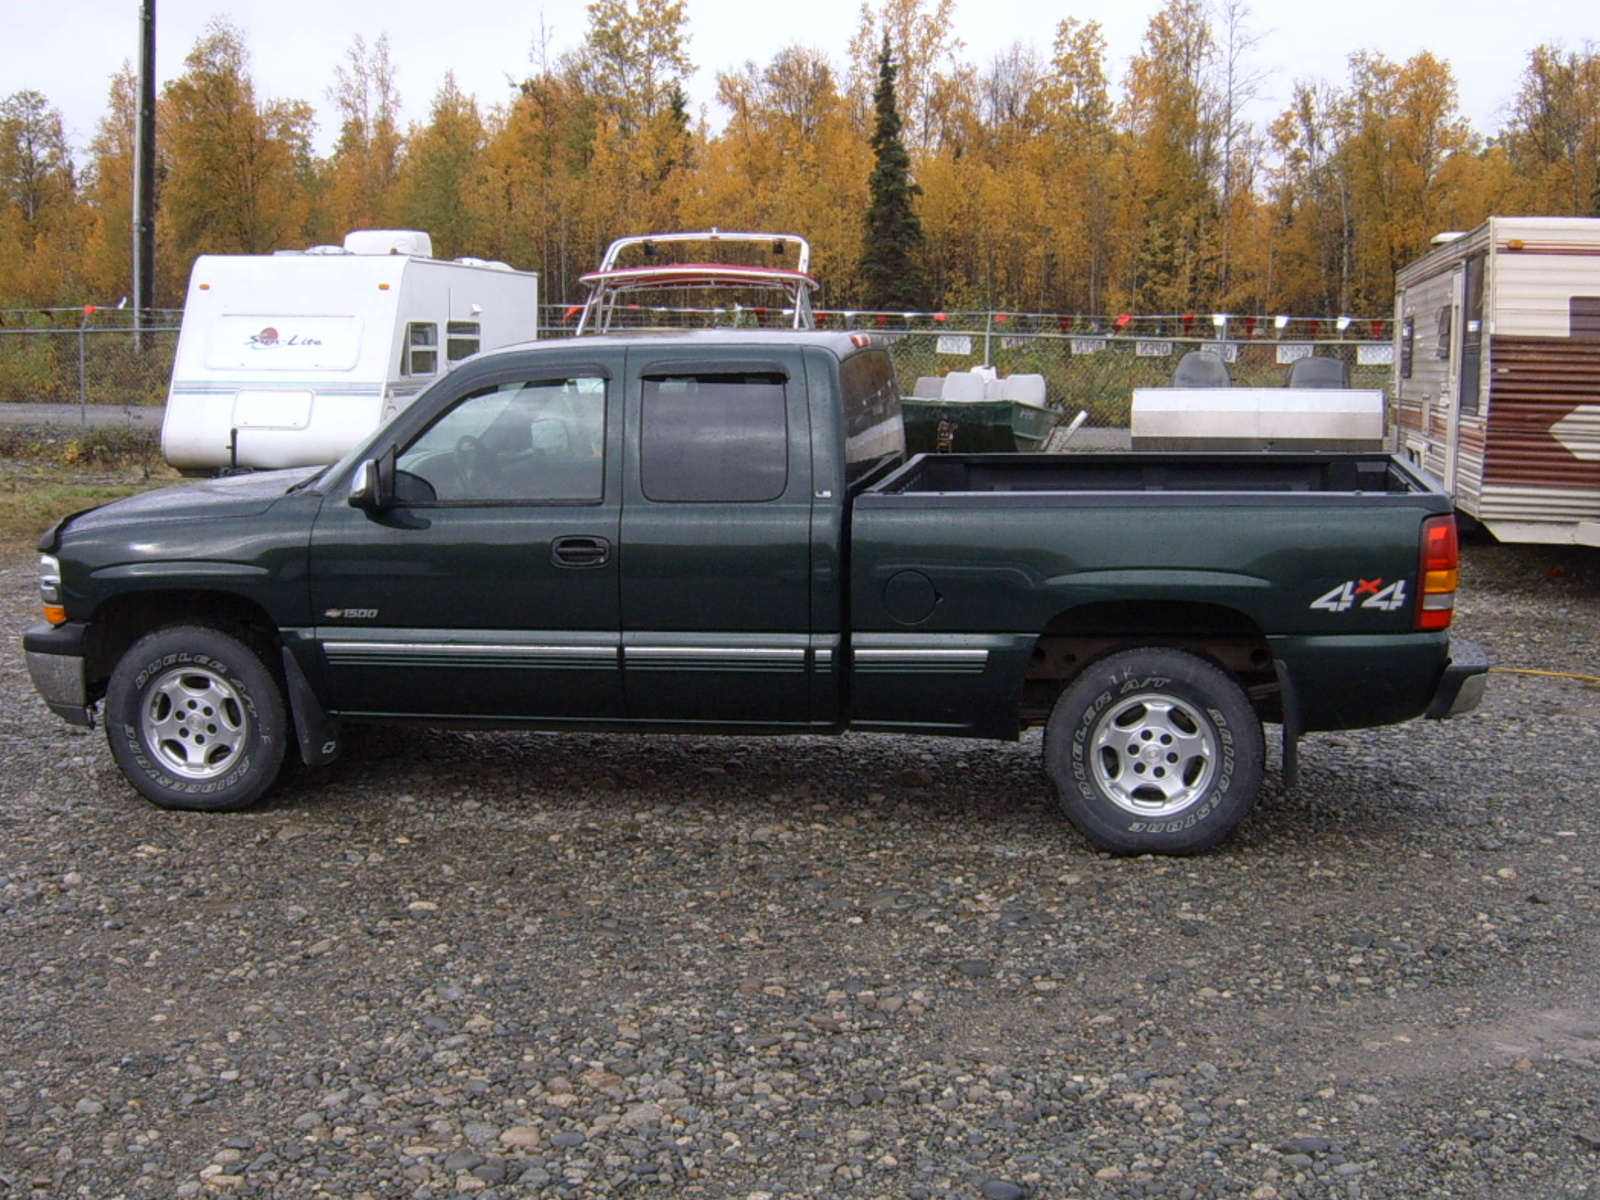 chevrolet silverado 1500 extended cab 4wd-pic. 2